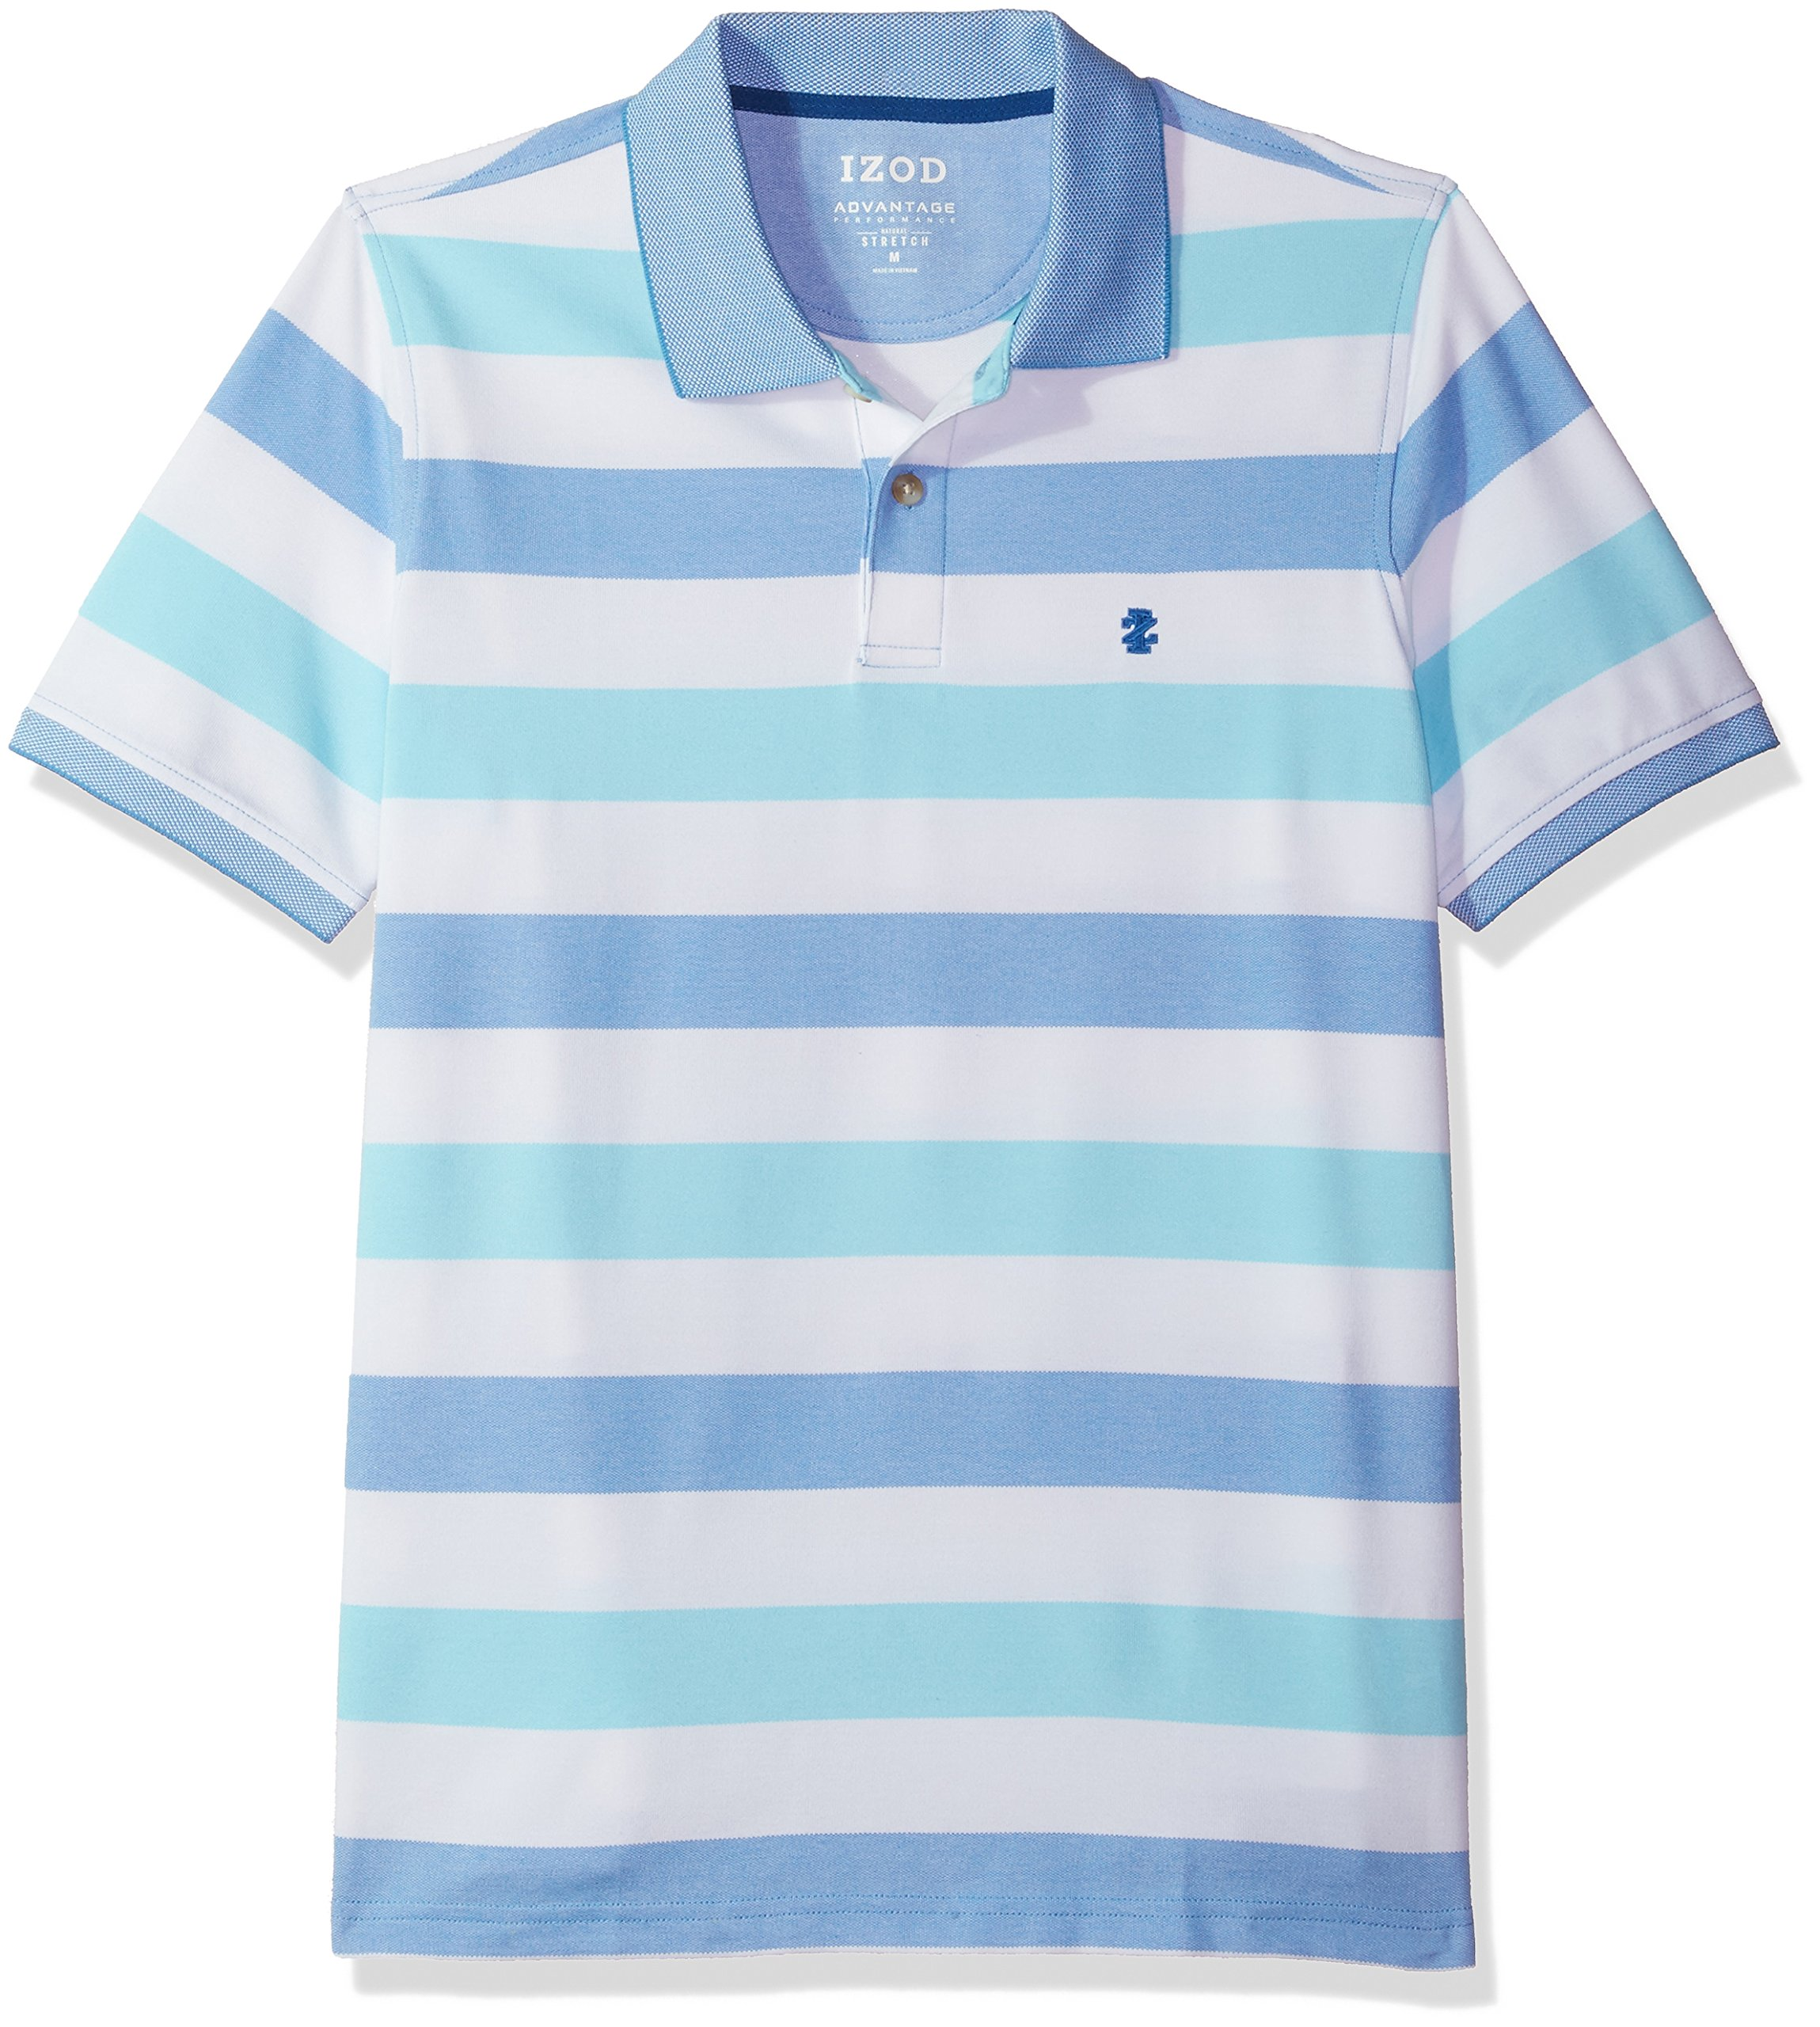 IZOD Men's Advantage Performance Stripe Polo, Blue Revival, XX-Large